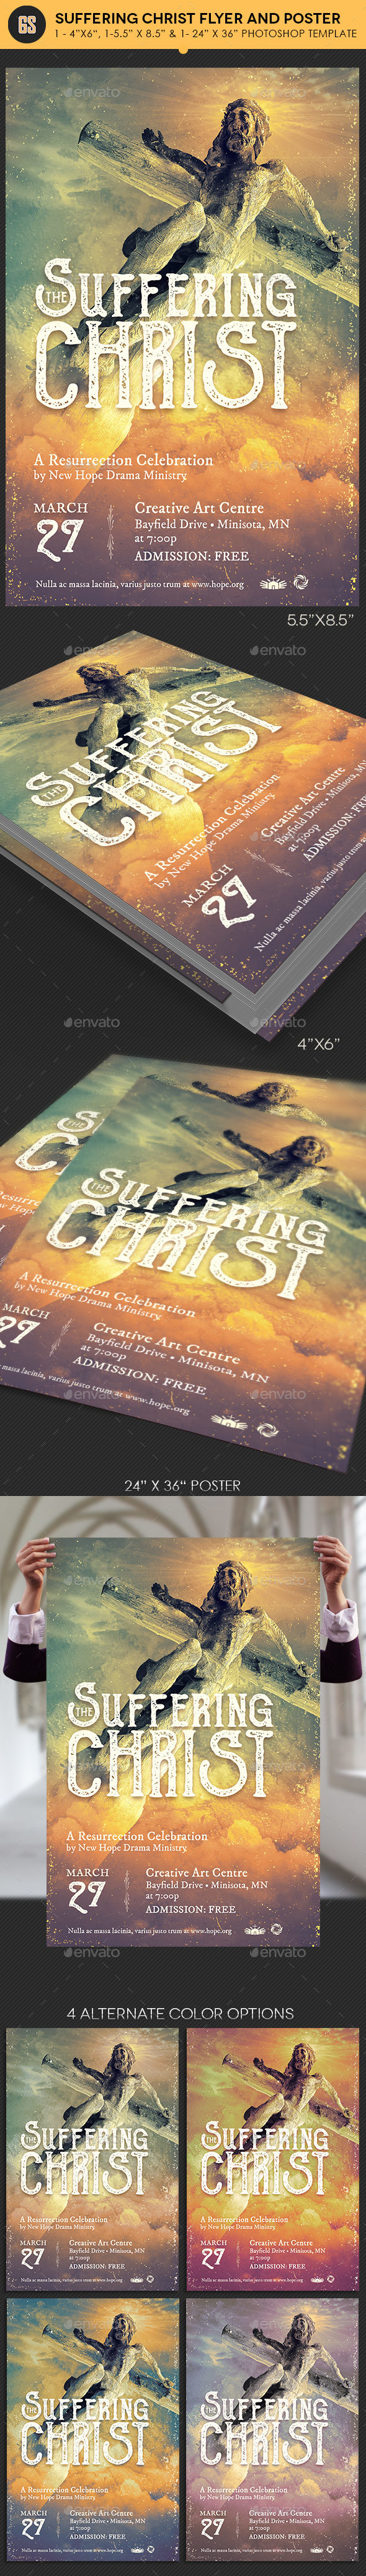 Suffering Christ Flyer Poster Template - Church Flyers